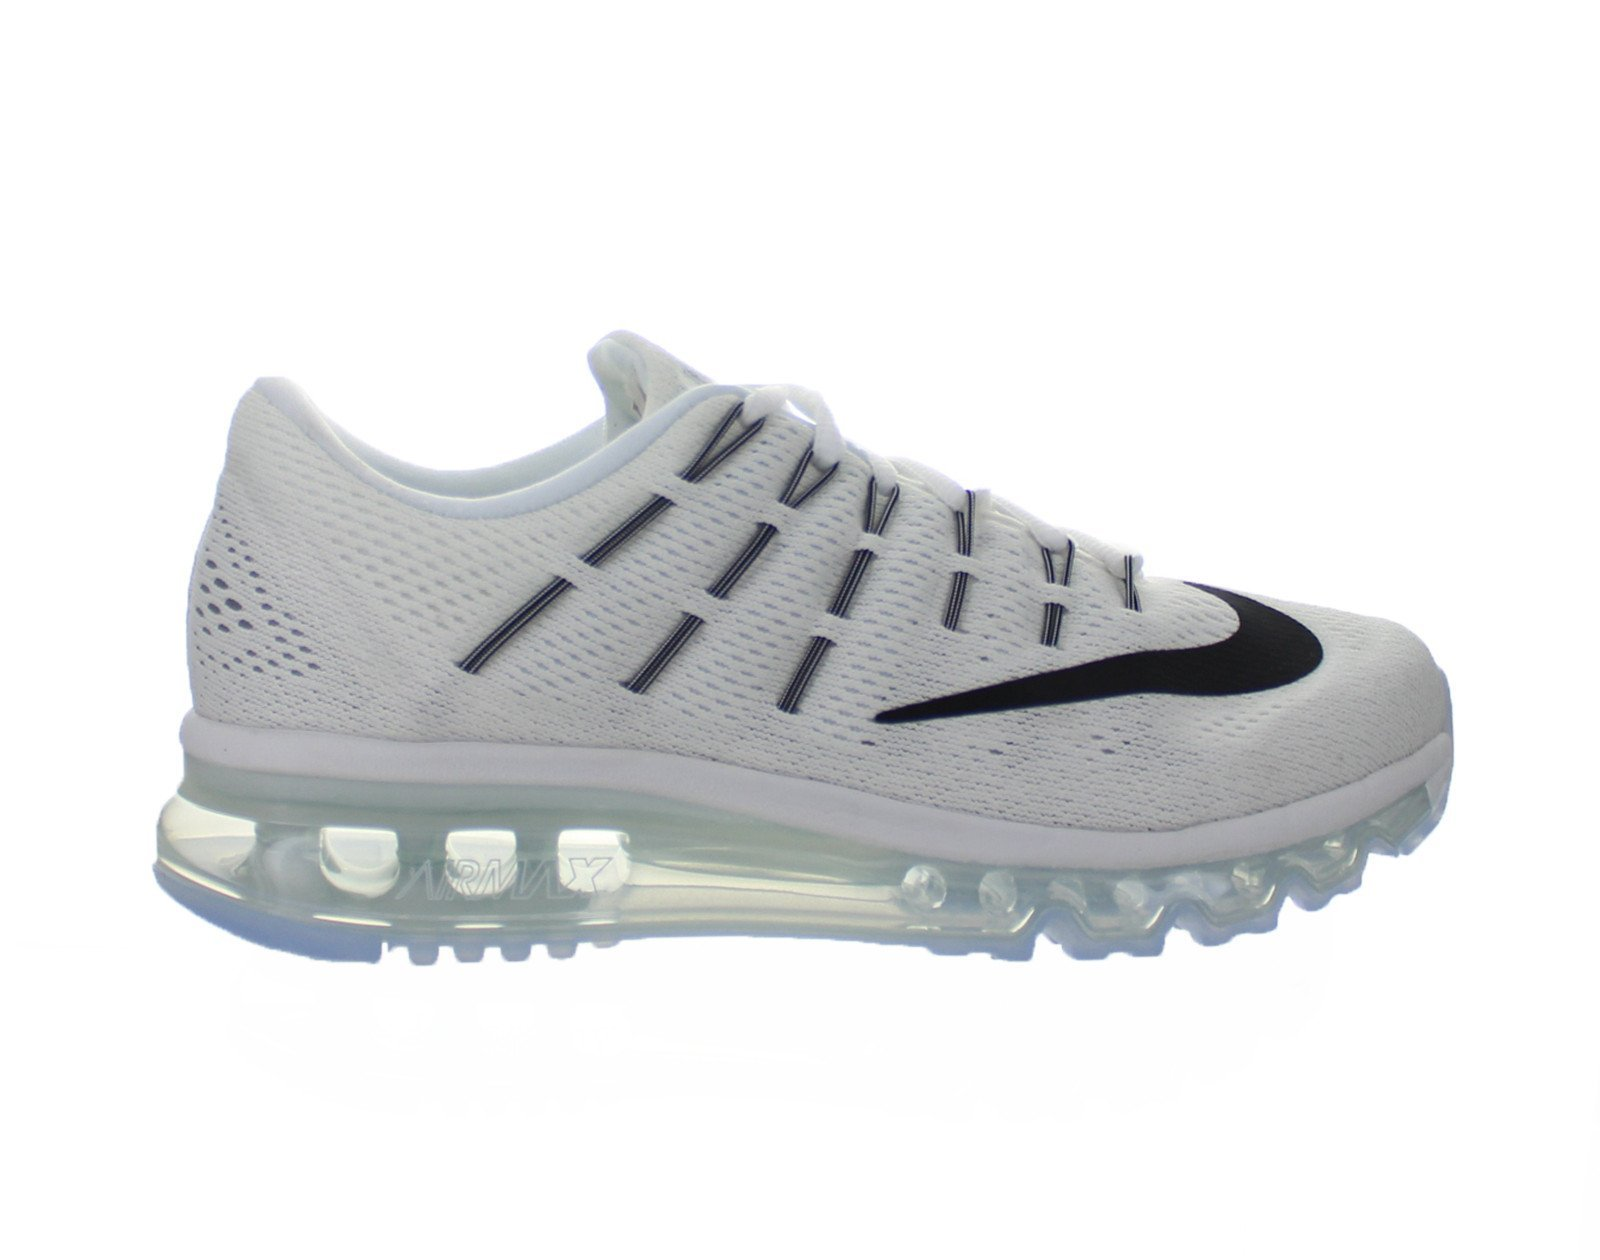 cheap for discount f06af 11f9c Galleon - Nike Women s Air Max 2016 Summit White White Black Mesh Running  Shoes 6 M US